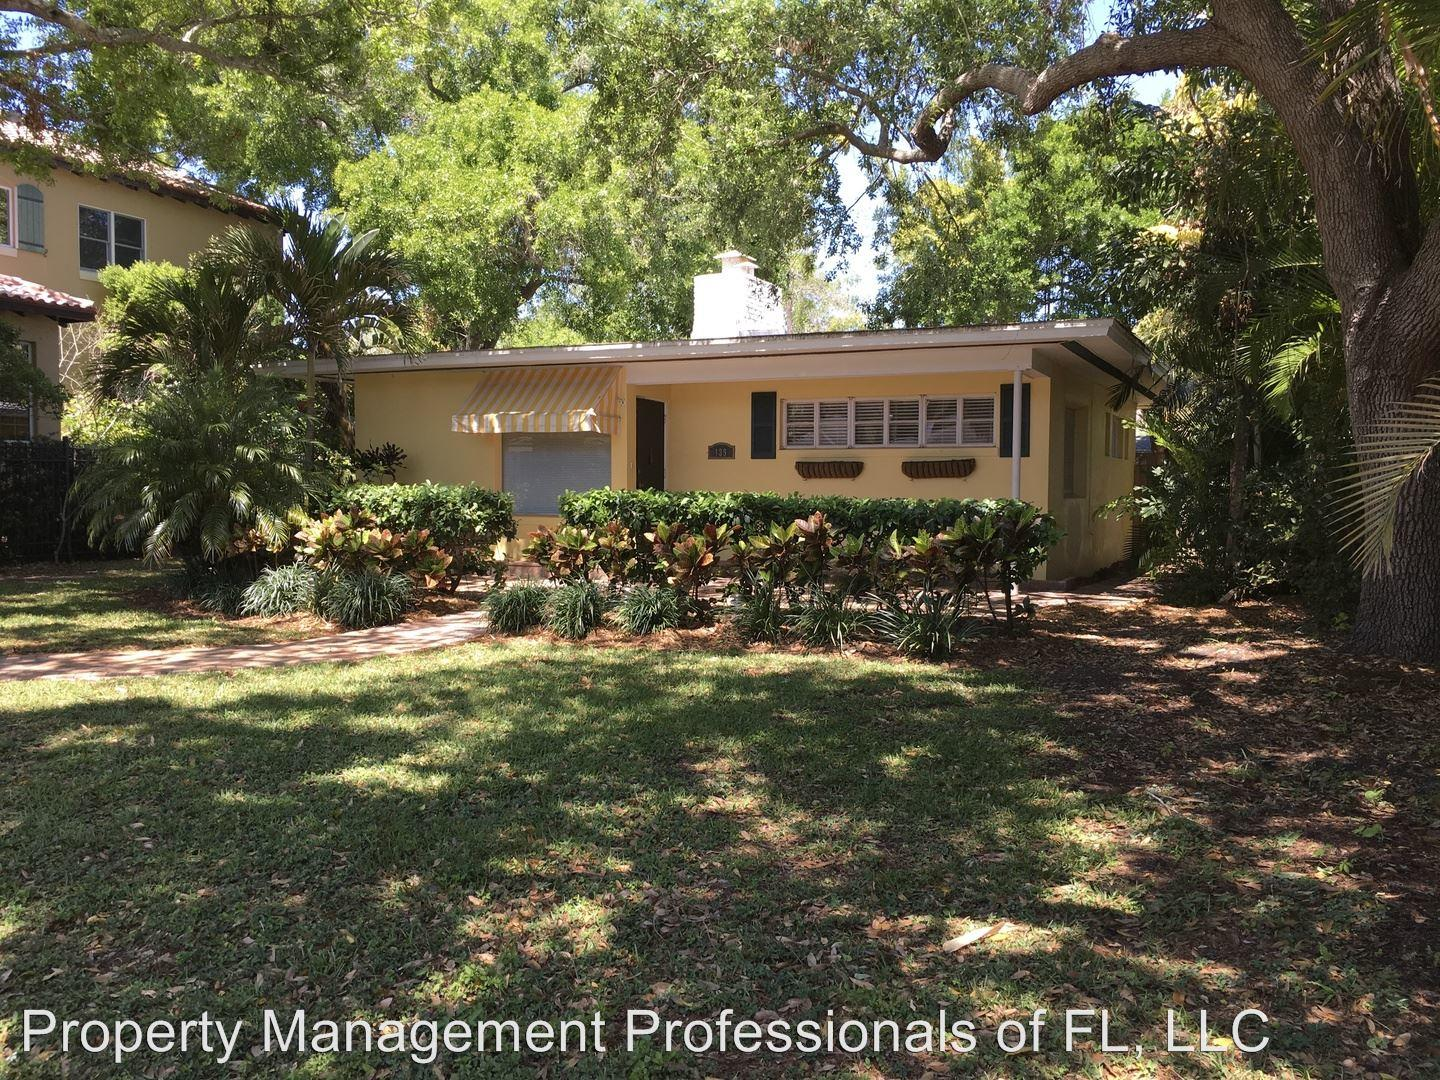 139 26 Ave NE Rentals - Saint Petersburg, FL | Trulia